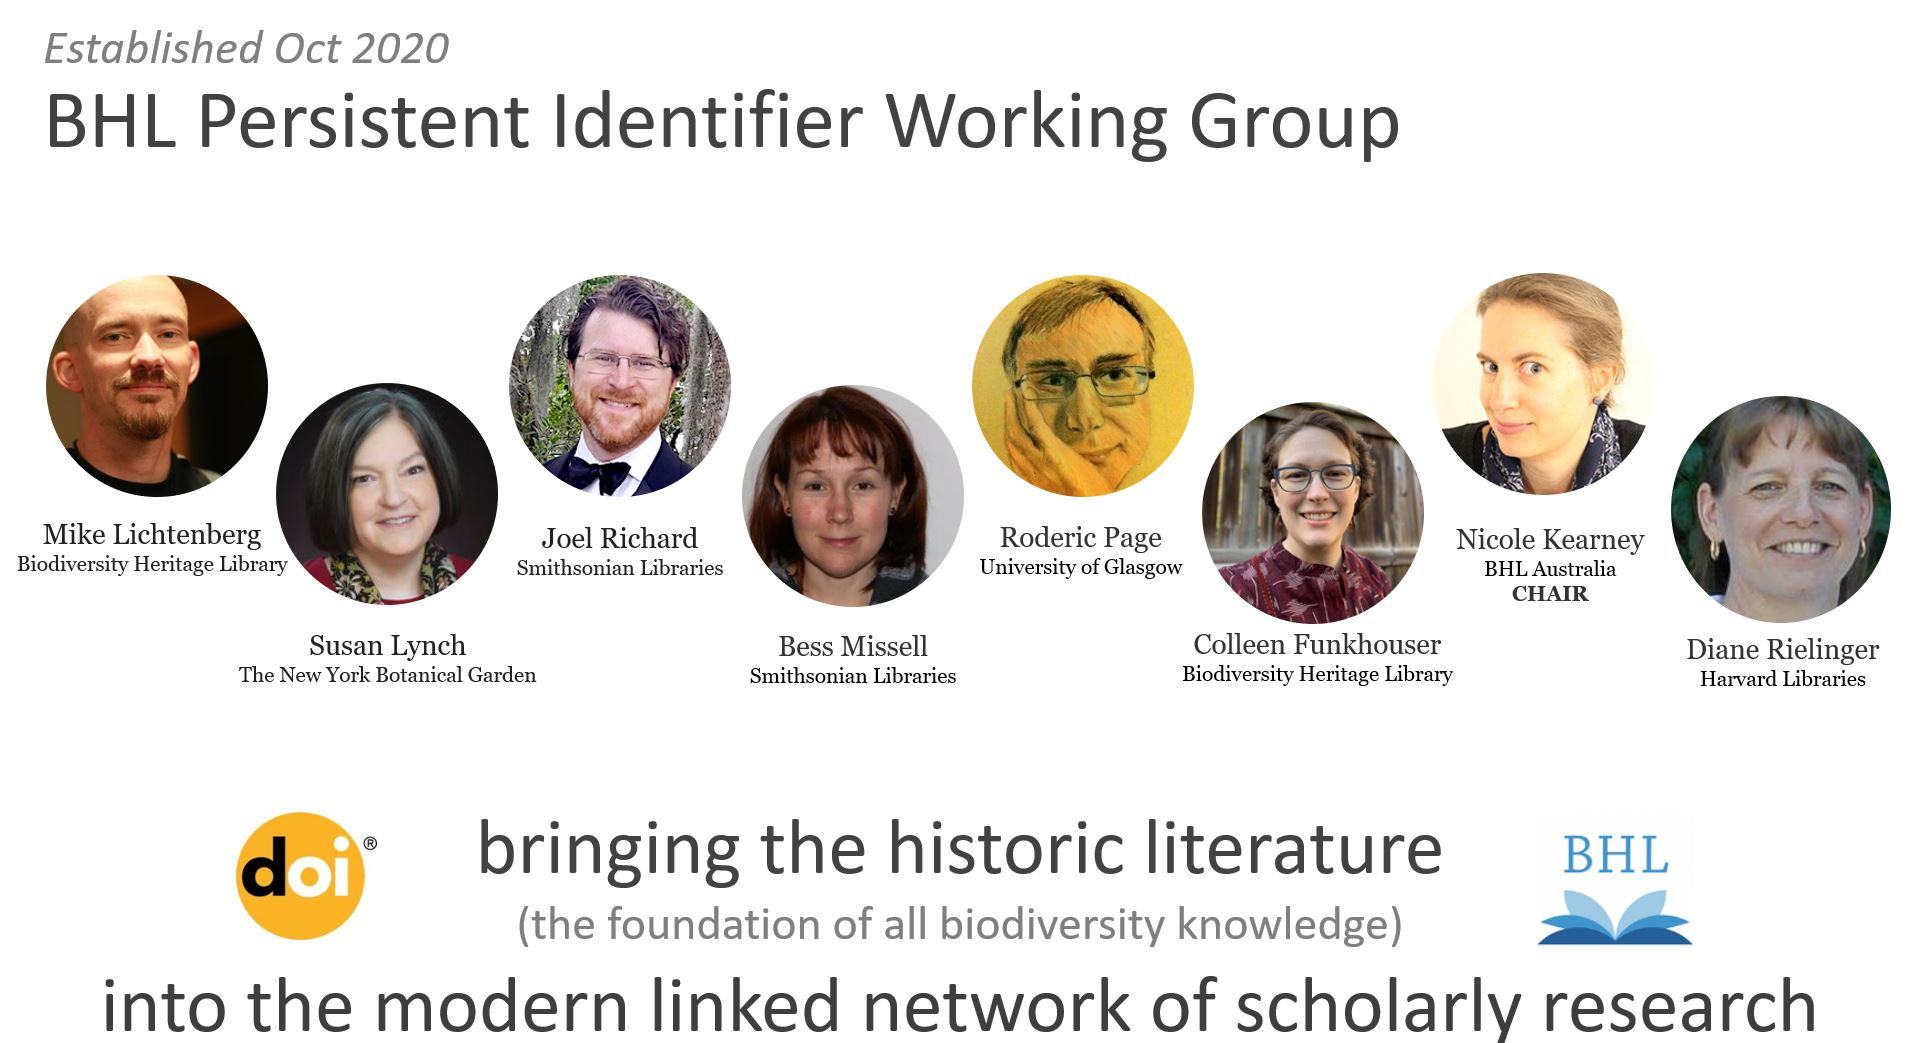 Graphic showing the members of BHL's Persistent Identifier Working Group